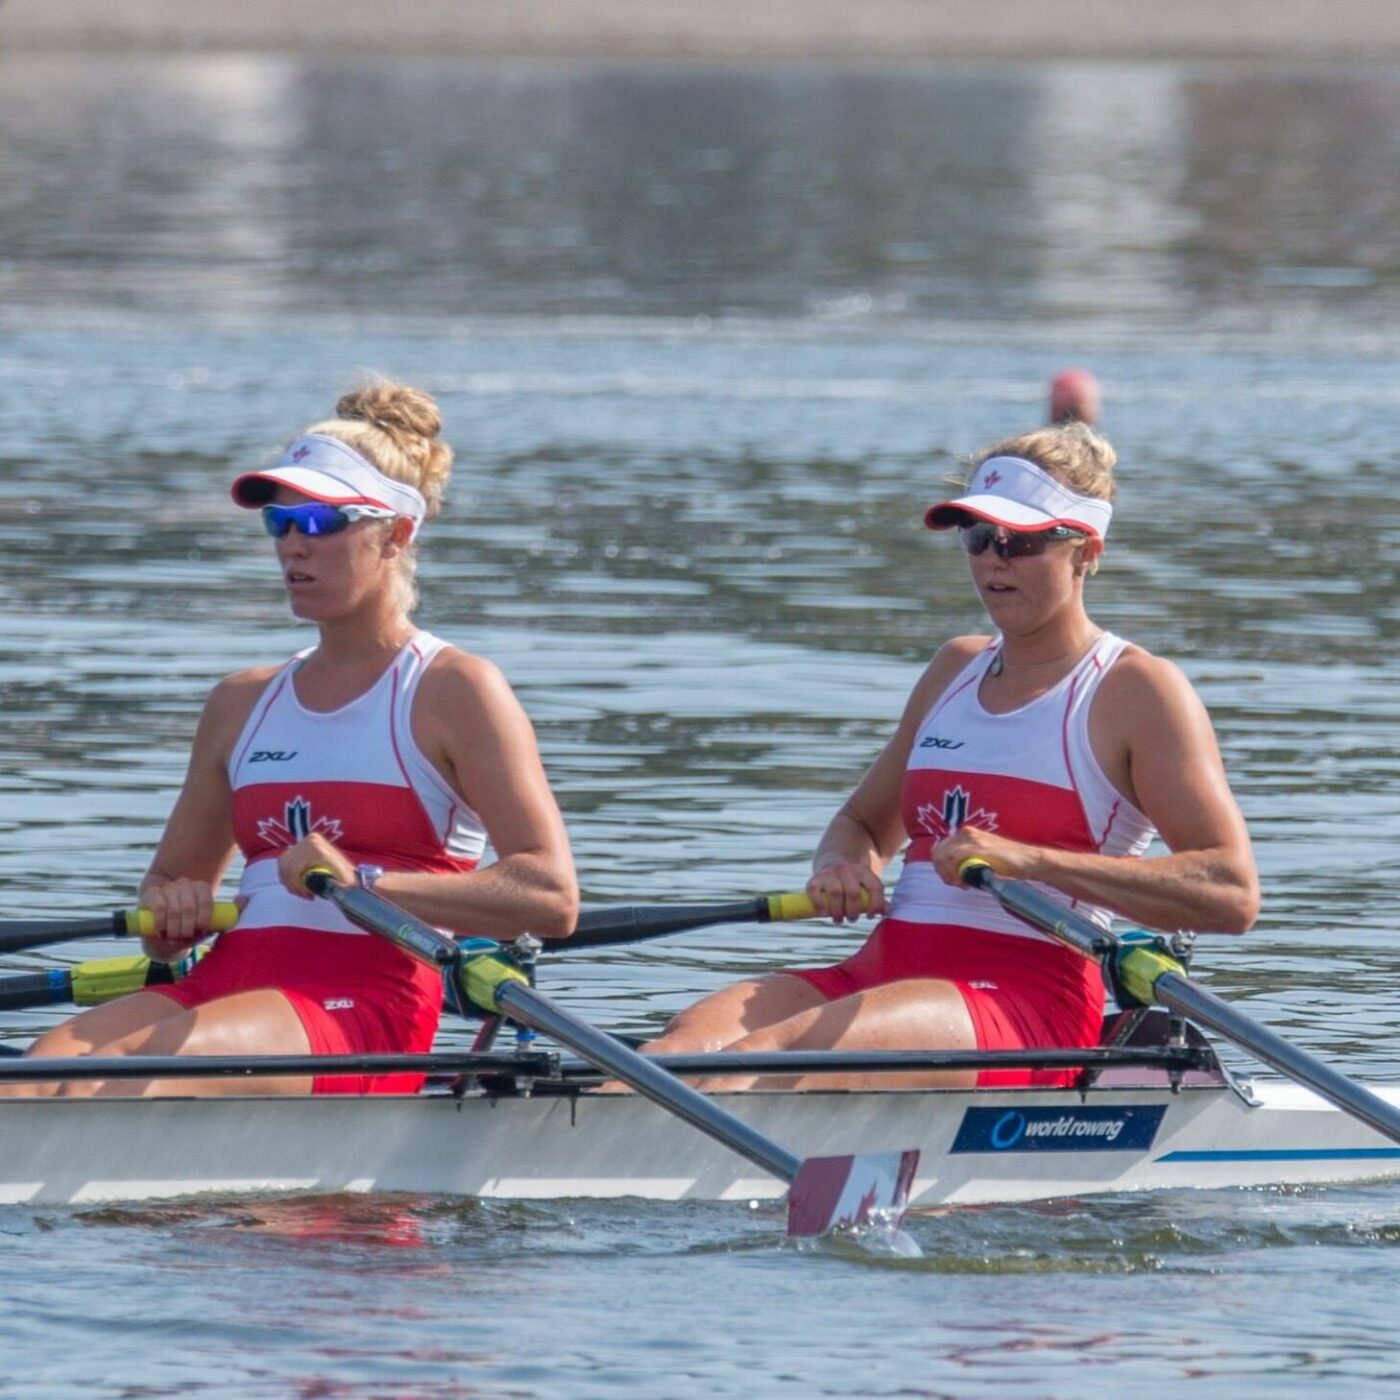 Two women wearing red and white uniforms and visors rigorously rowing on calm water.